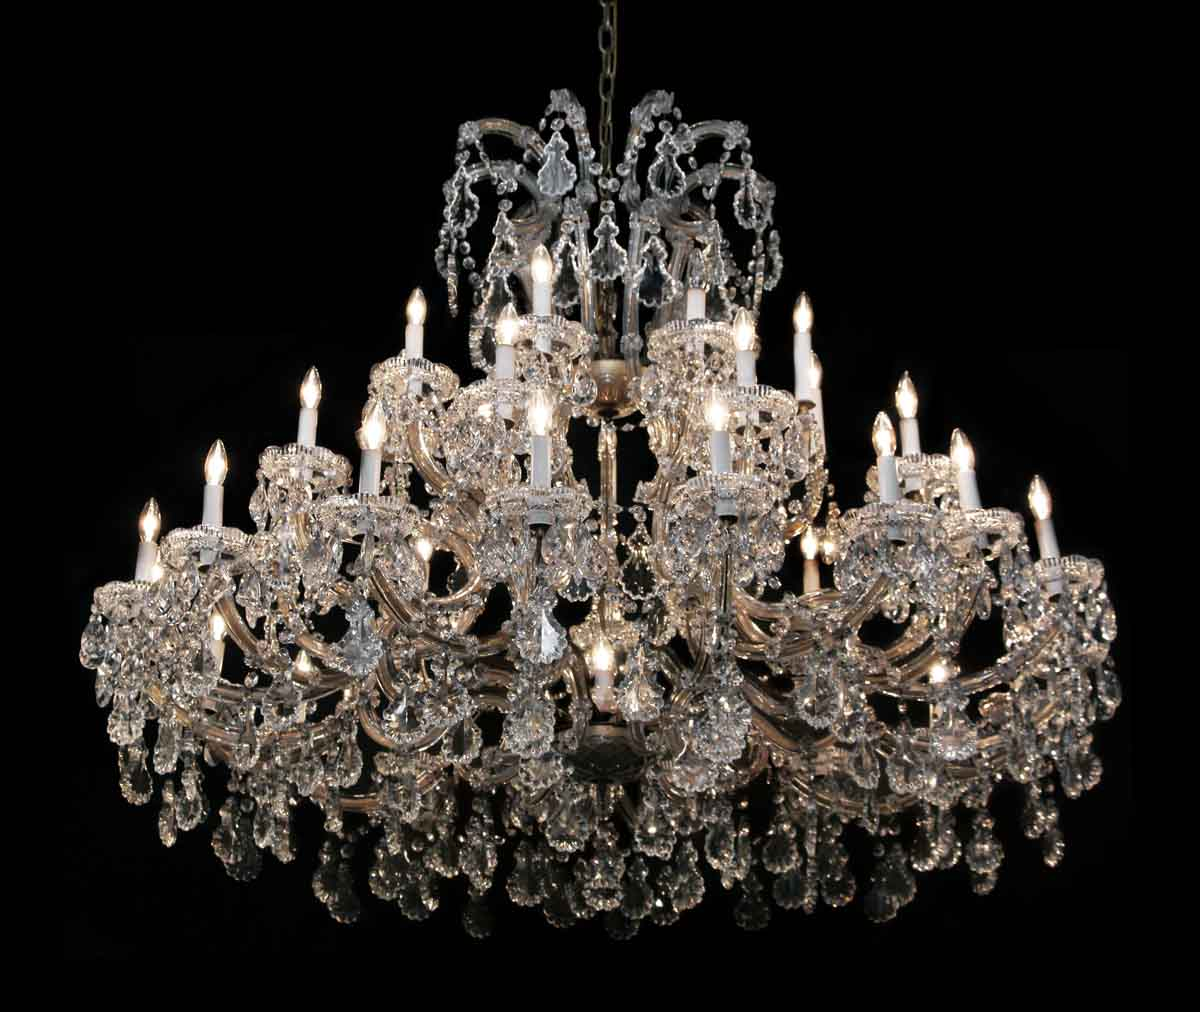 Extra Large 37 Light Marie Therese Chandelier - Chandeliers